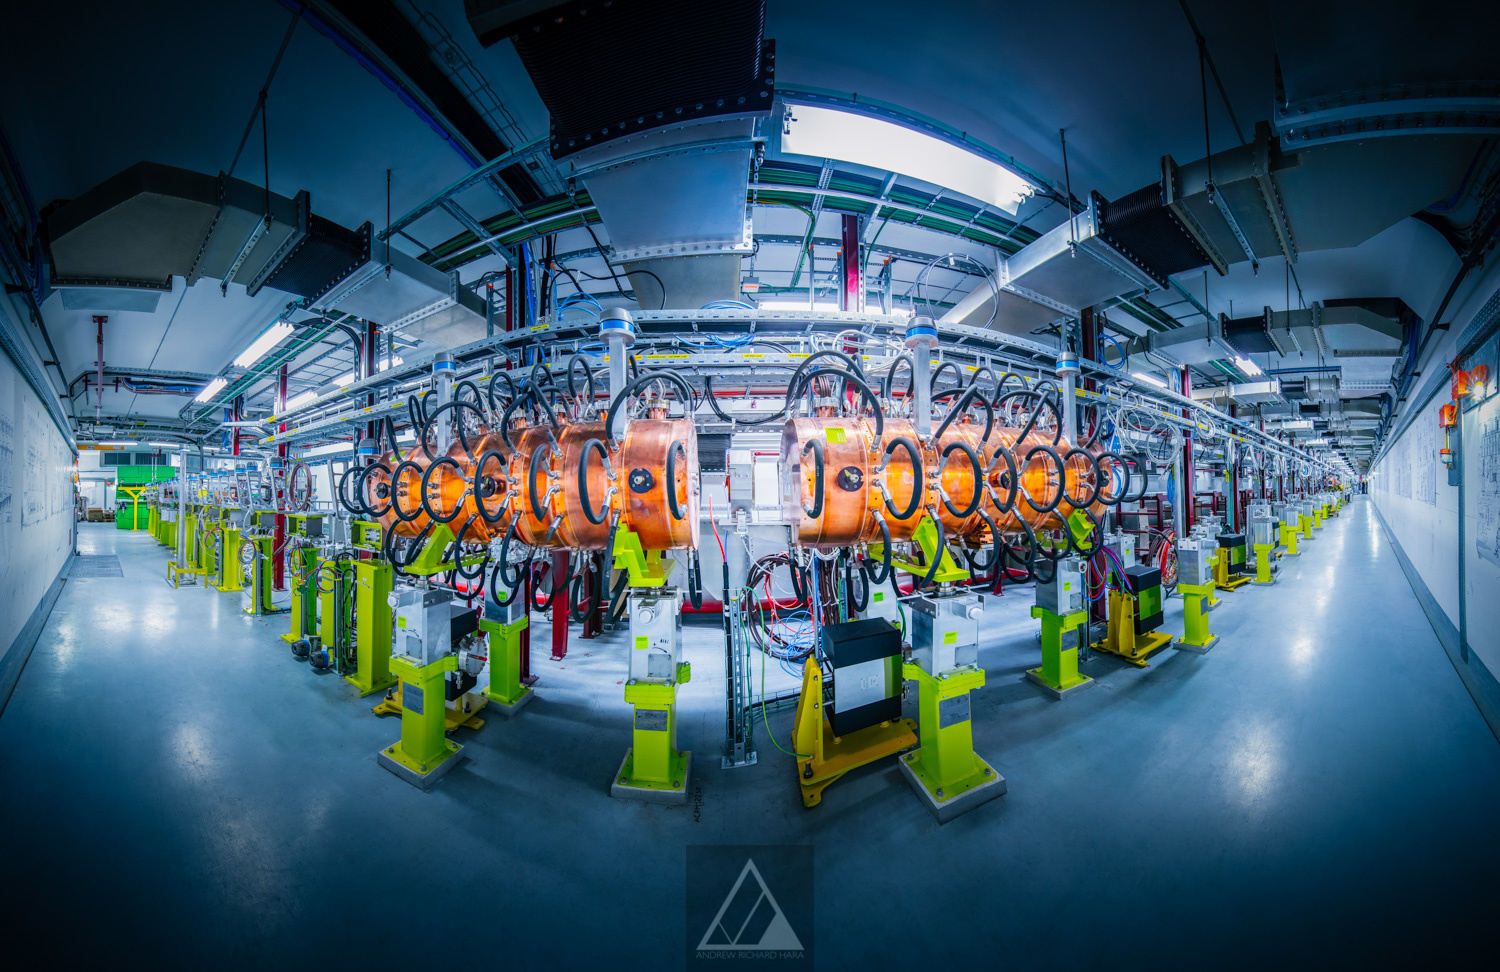 The LINAC4 accelerator - Photo by Andrew Hara